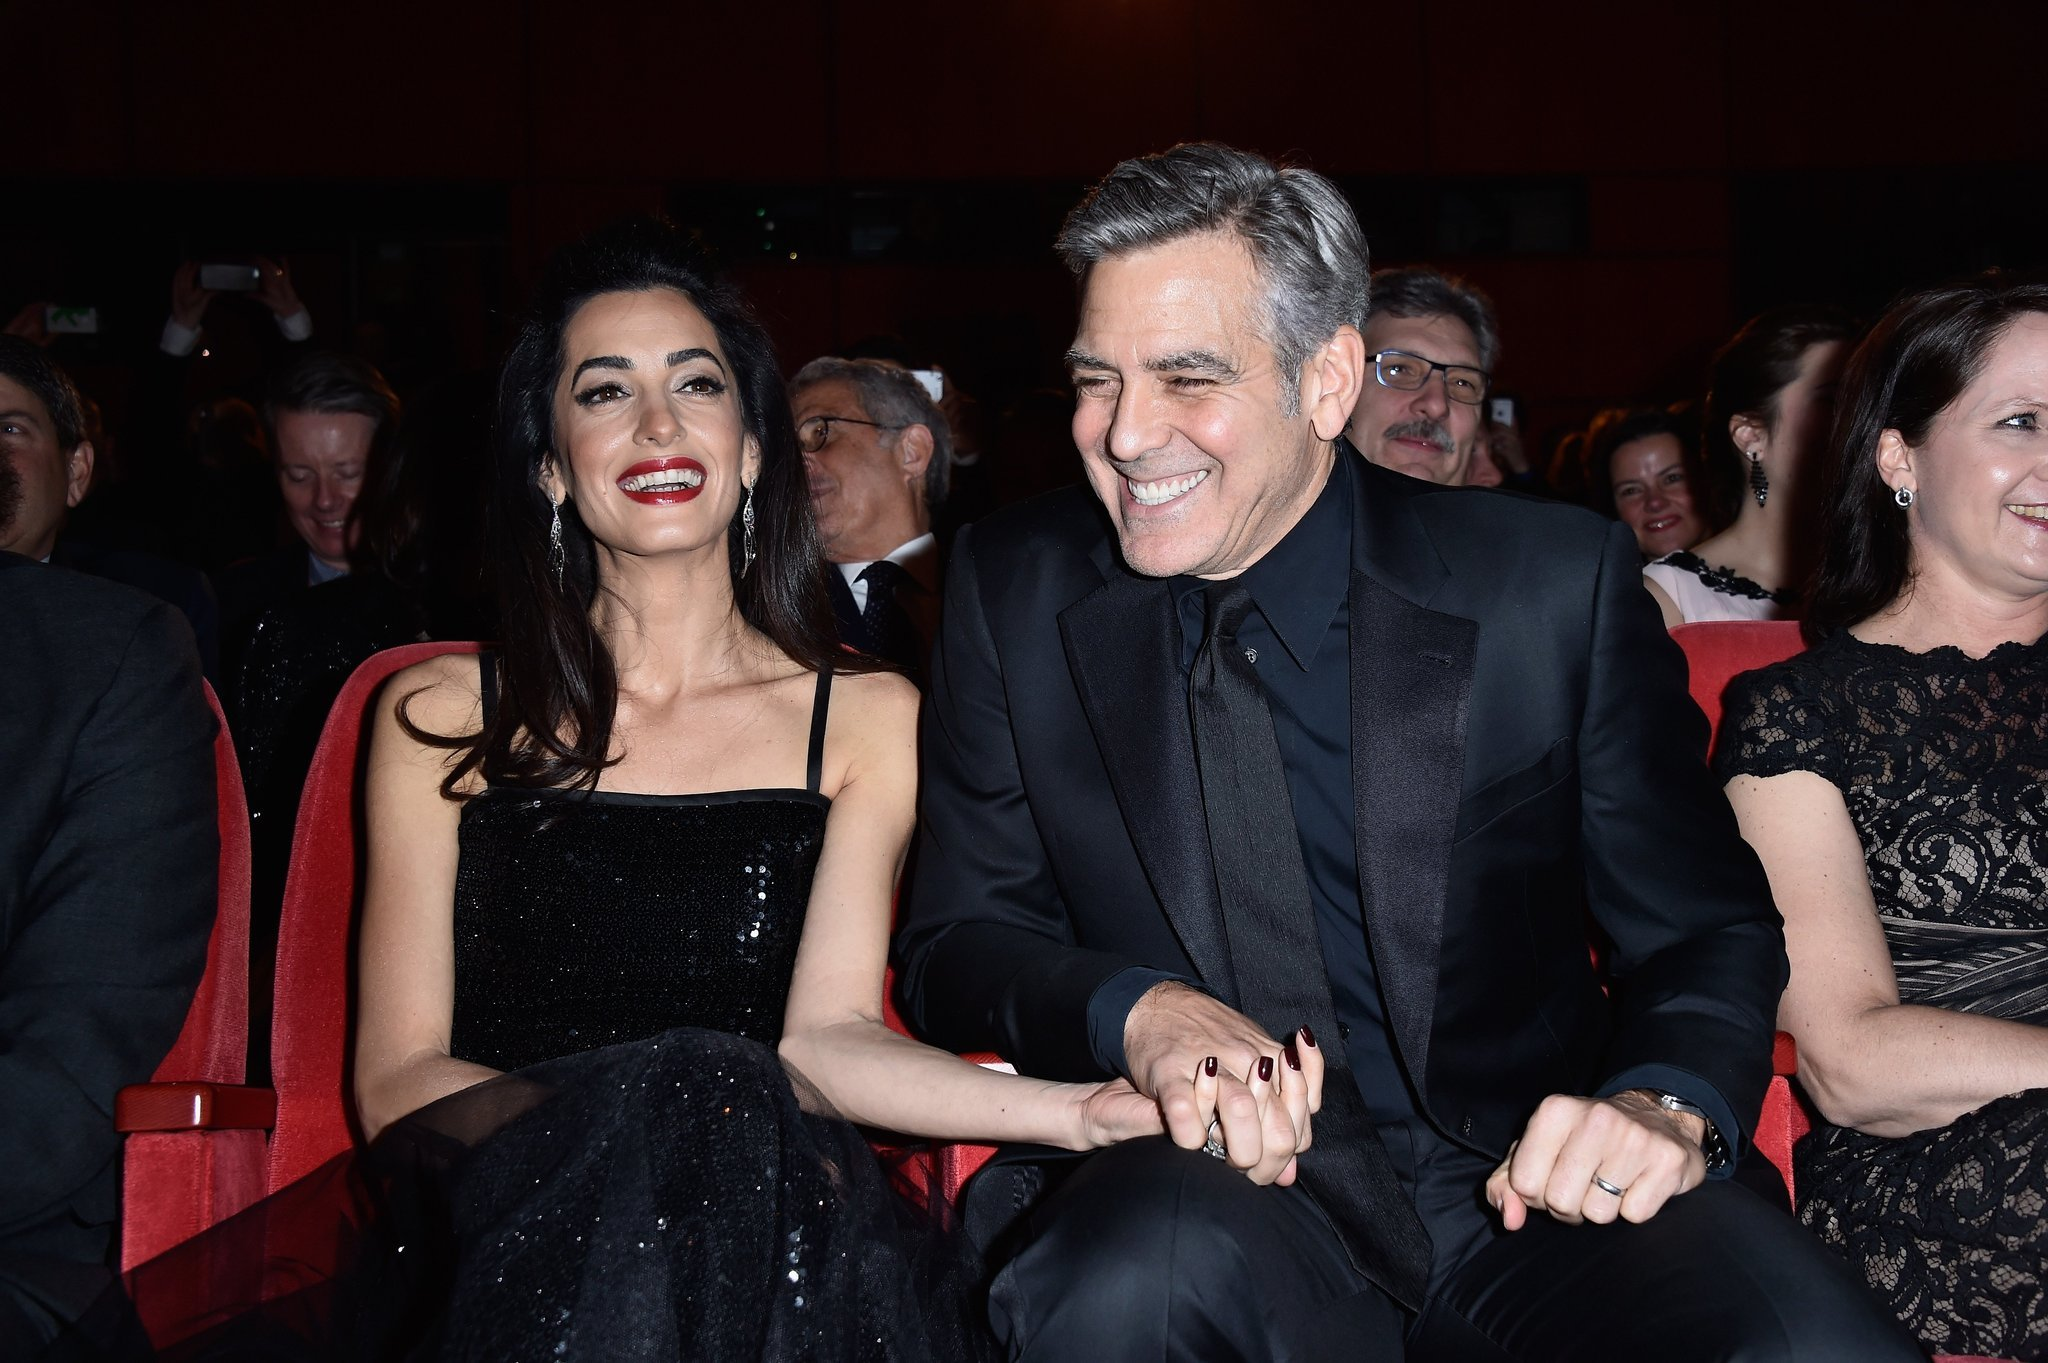 Amal gives birth to twins Alexander and Ella